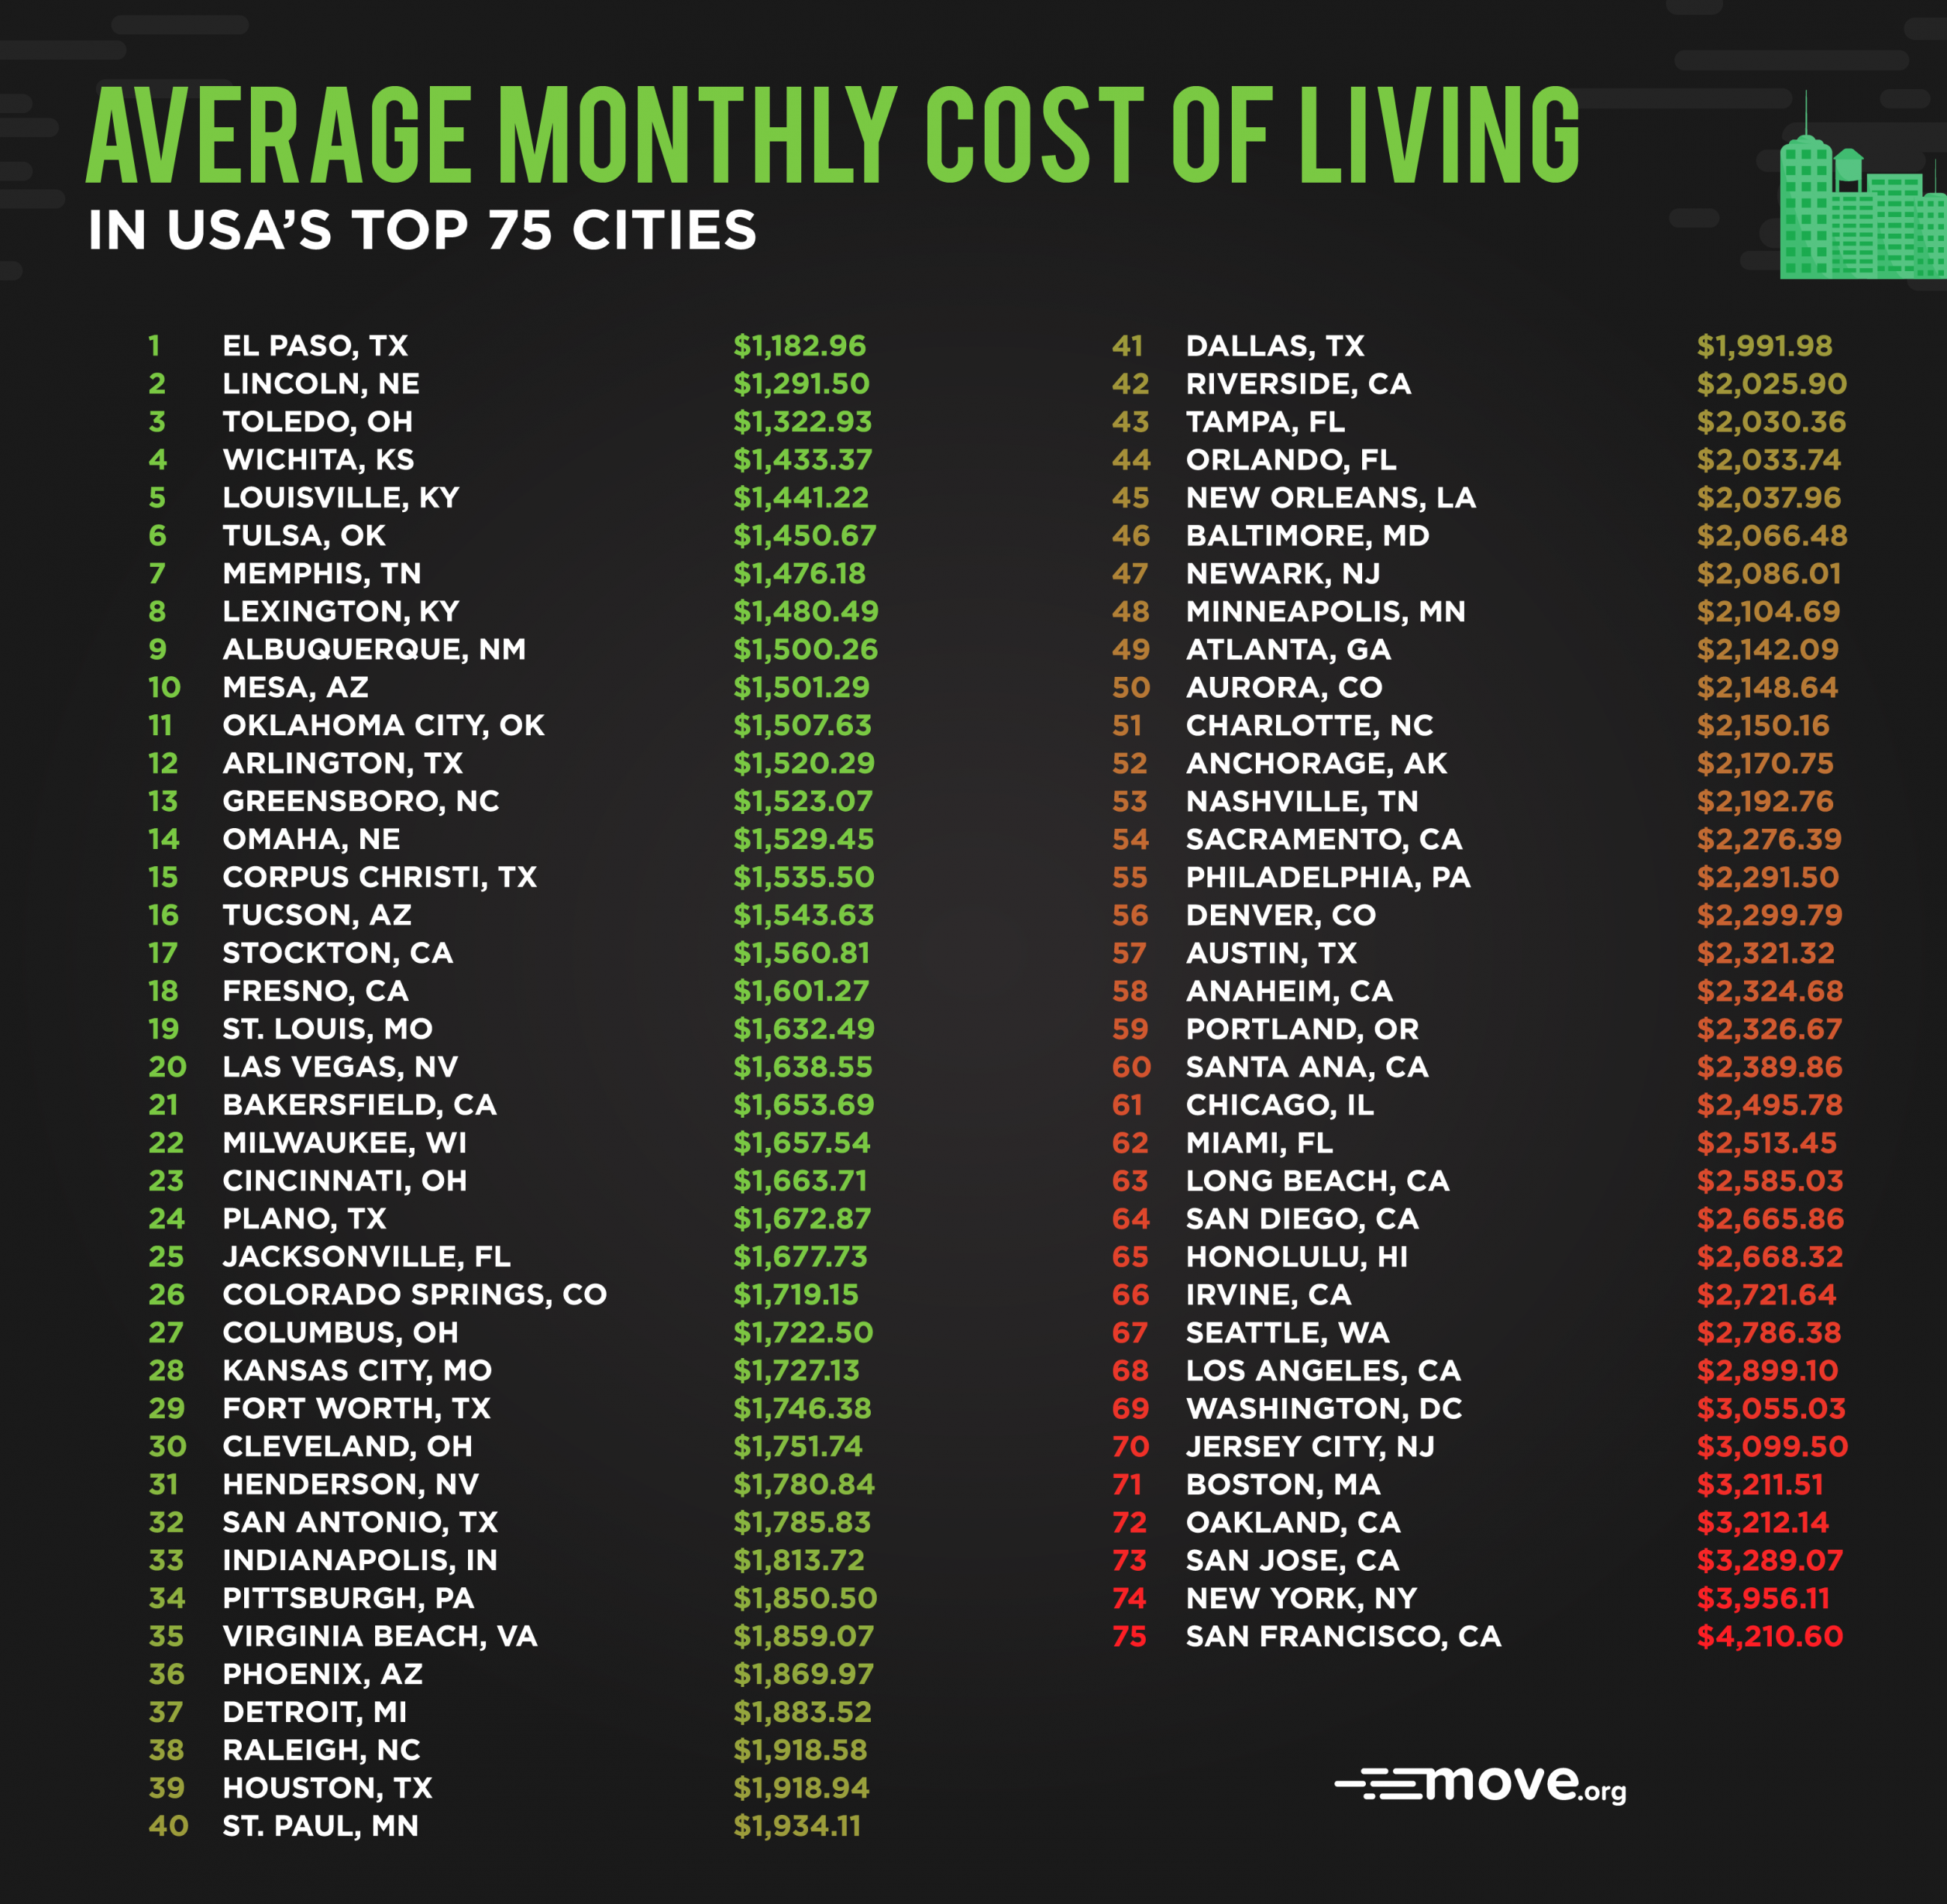 Move.org cost of living chart. Visit source link at the end of this article for more information.